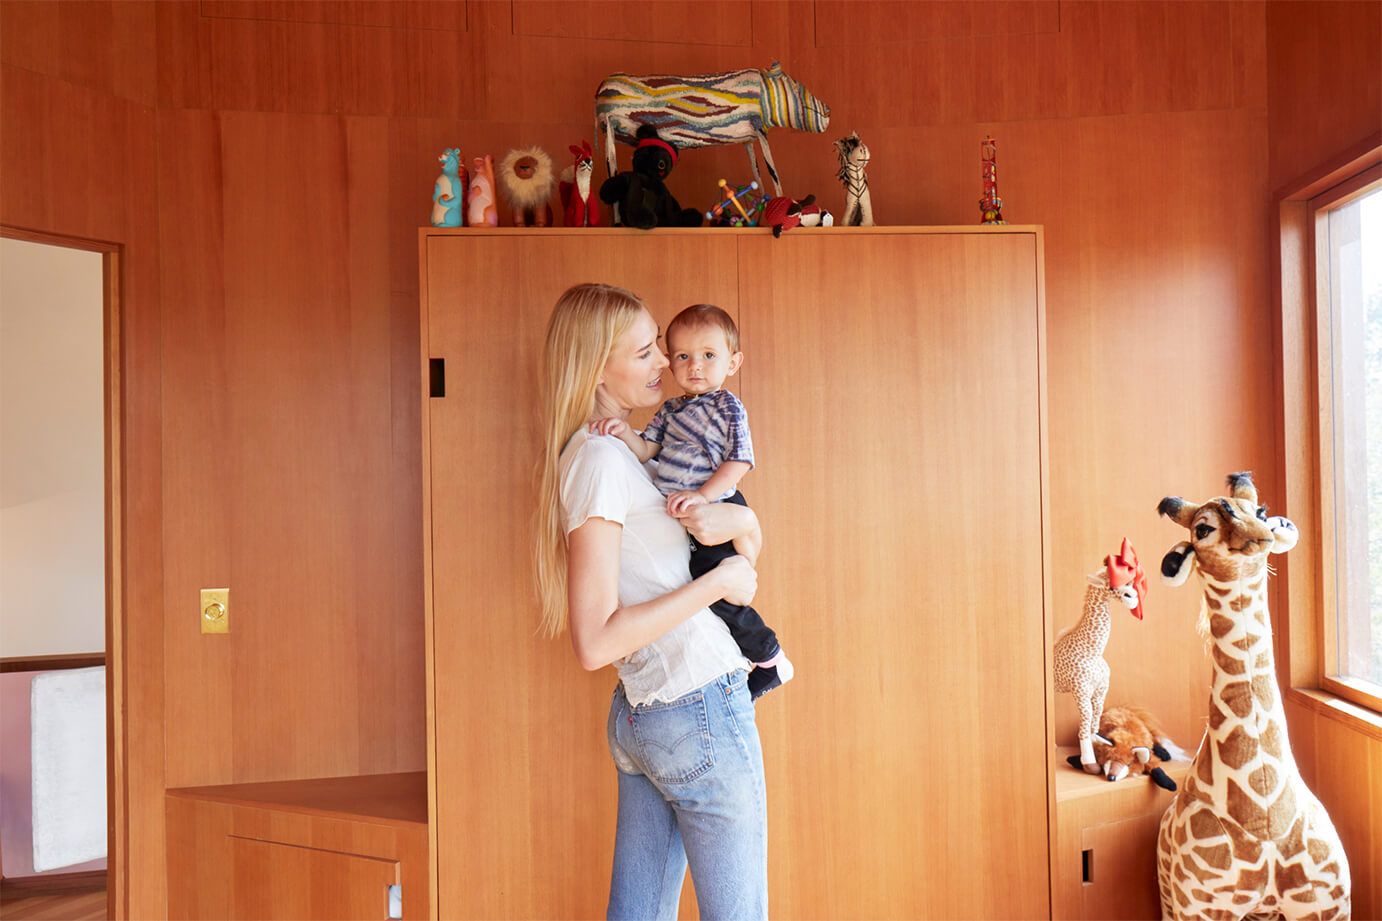 Bel Holding Baby in Bedroom